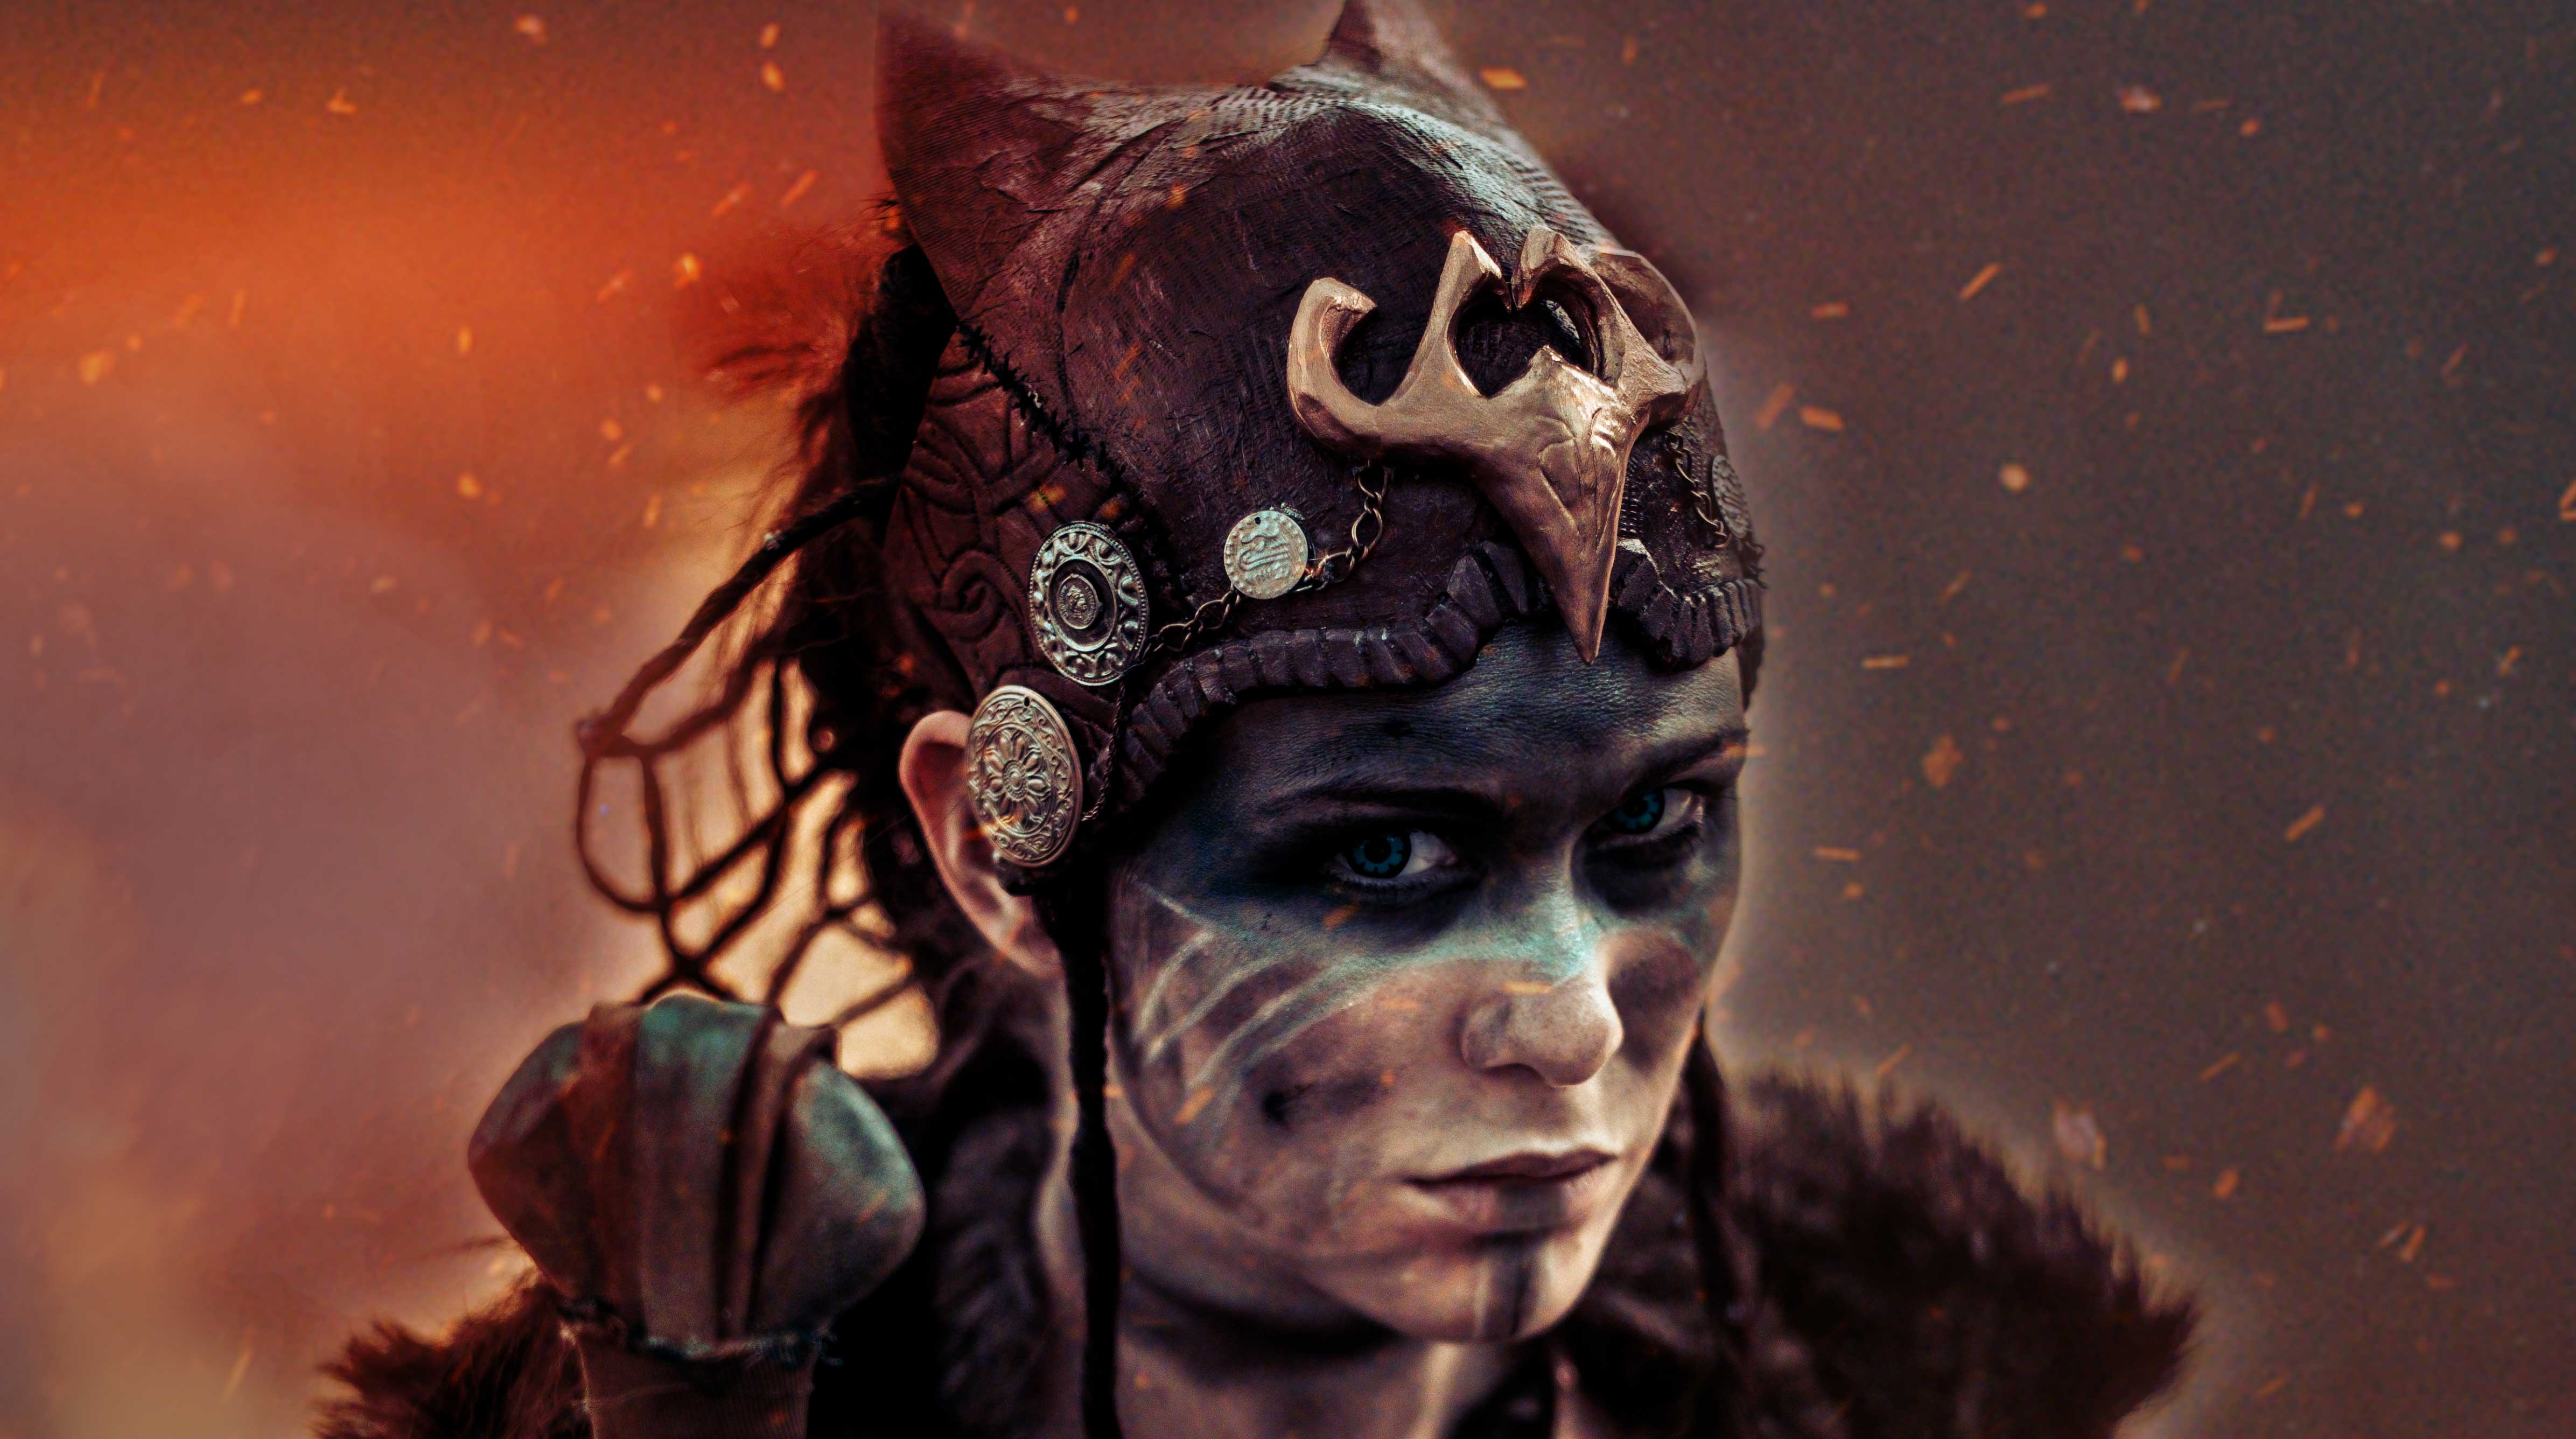 Hellblade Wins Siggraph 2016 Award for Best Real-Time Graphics and Interactivity